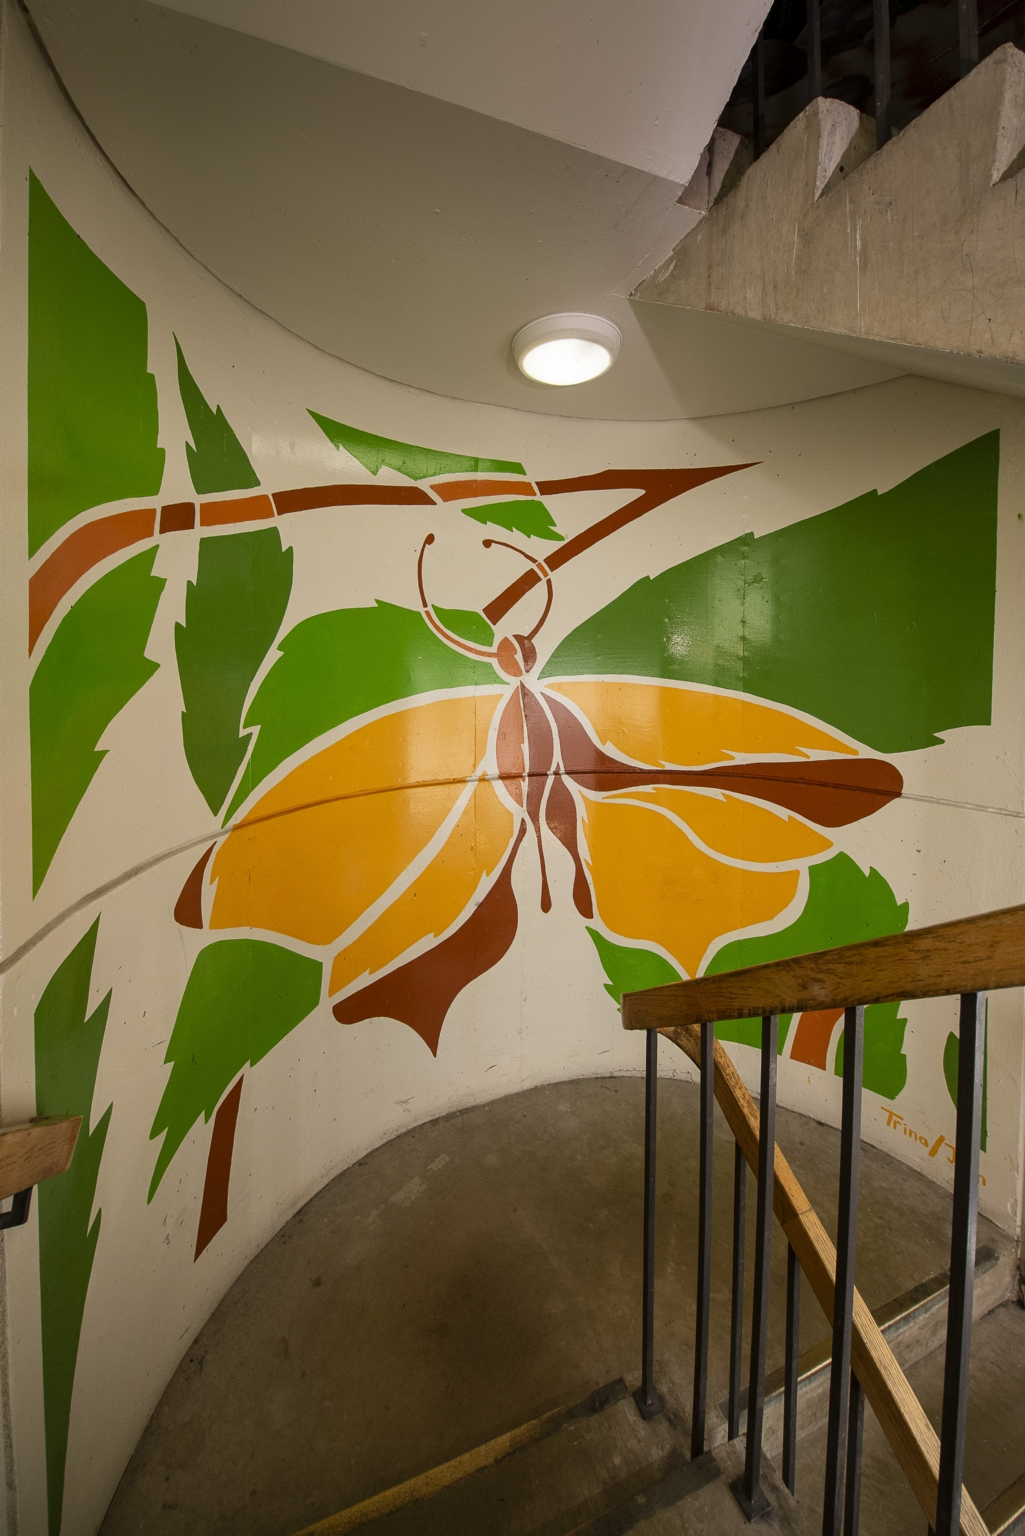 East stairwell, between 14th and 15th floors